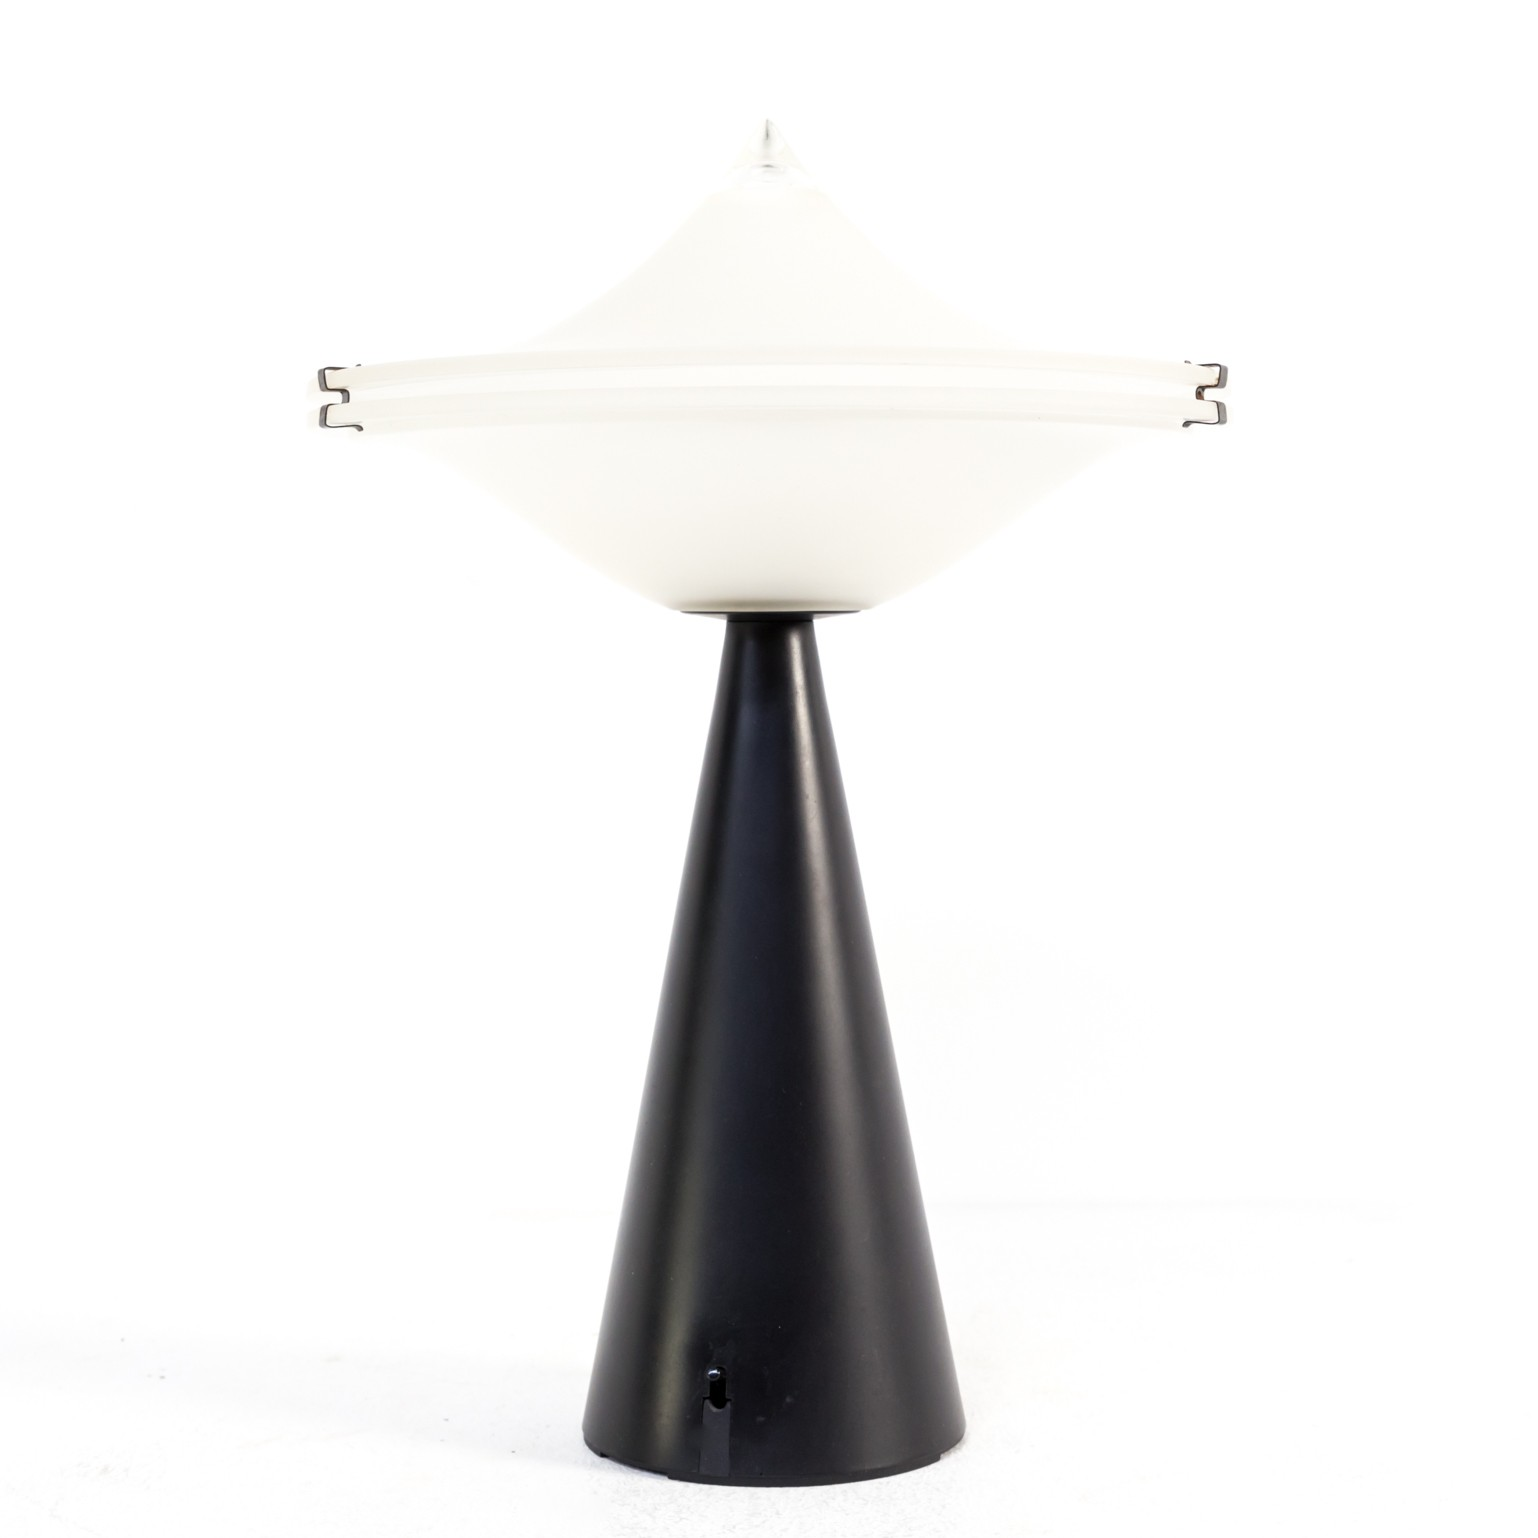 Aliën lamp by Lacca Cesare for Tre Ci Luce - 1970s - Design Market